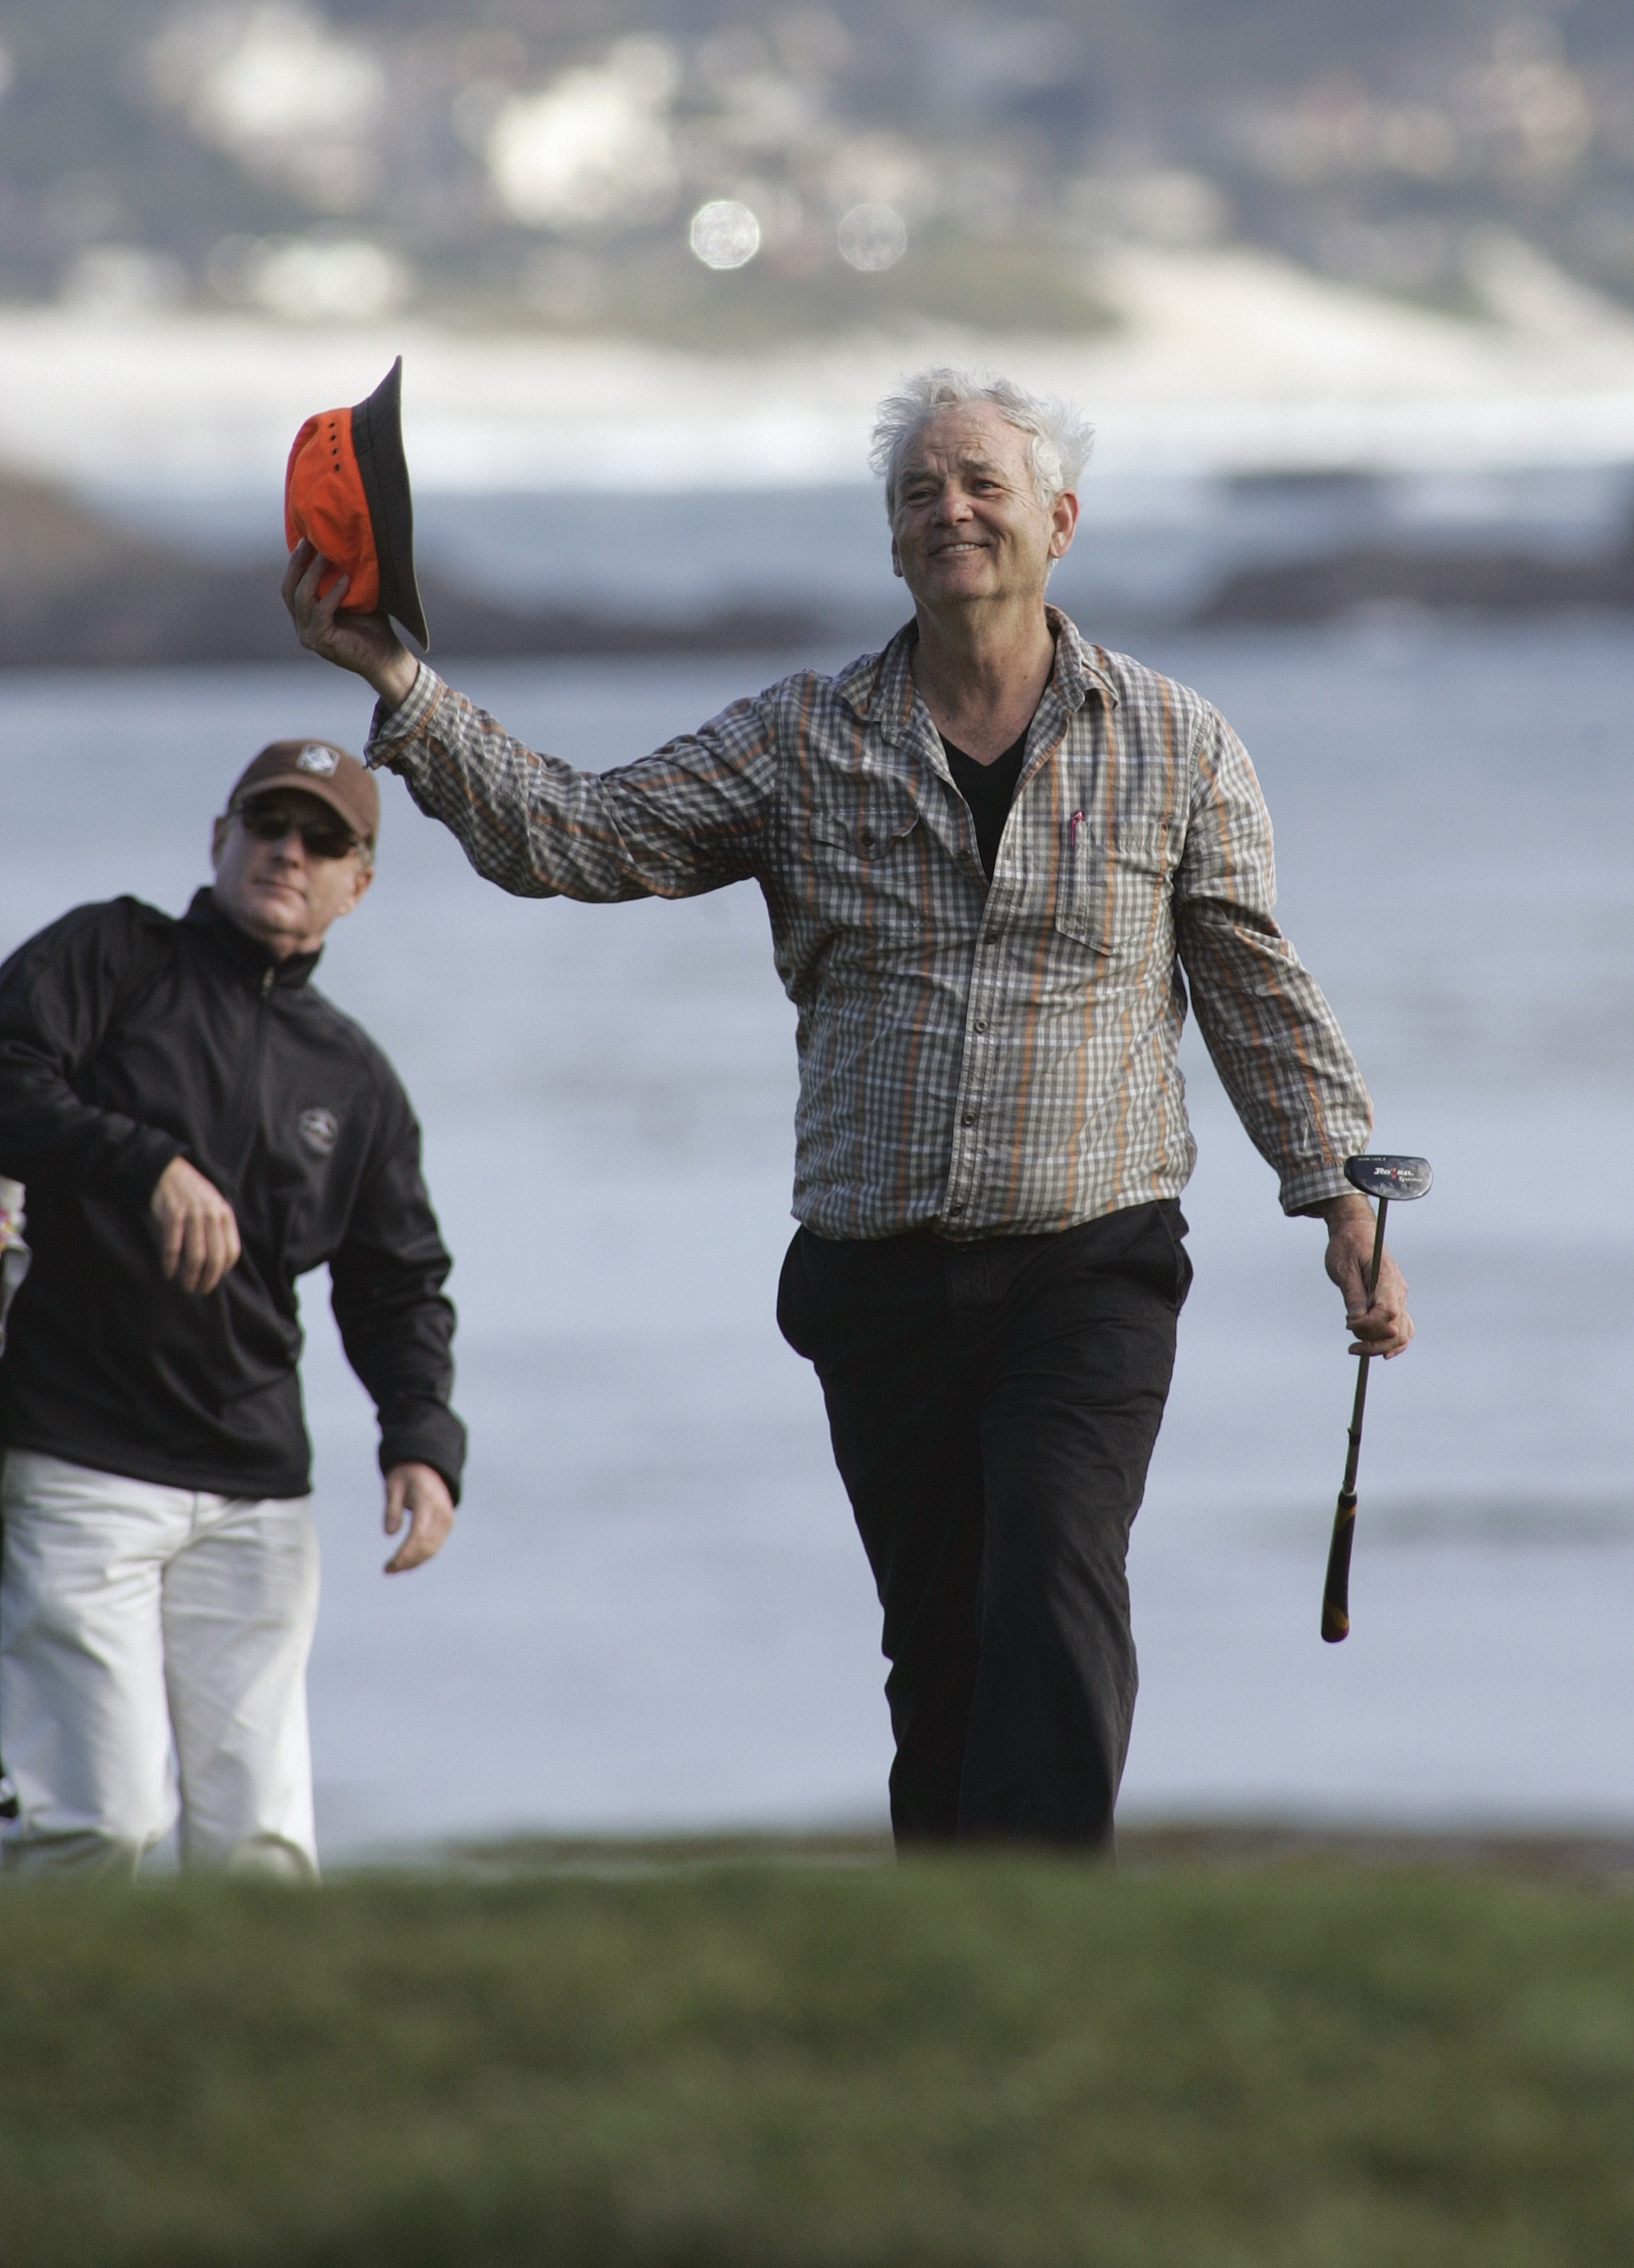 13 Feb 2011, Pebble Beach, California, USA --- 13 February 2011: Bill Murray acknowledges the crowd on the 18th during the Final Round of the AT&T Pebble Beach National Pro-Am at Pebble Beach Golf Links in Pebble Beach, CA. --- Image by © Larry Placido/Icon SMI/Corbis